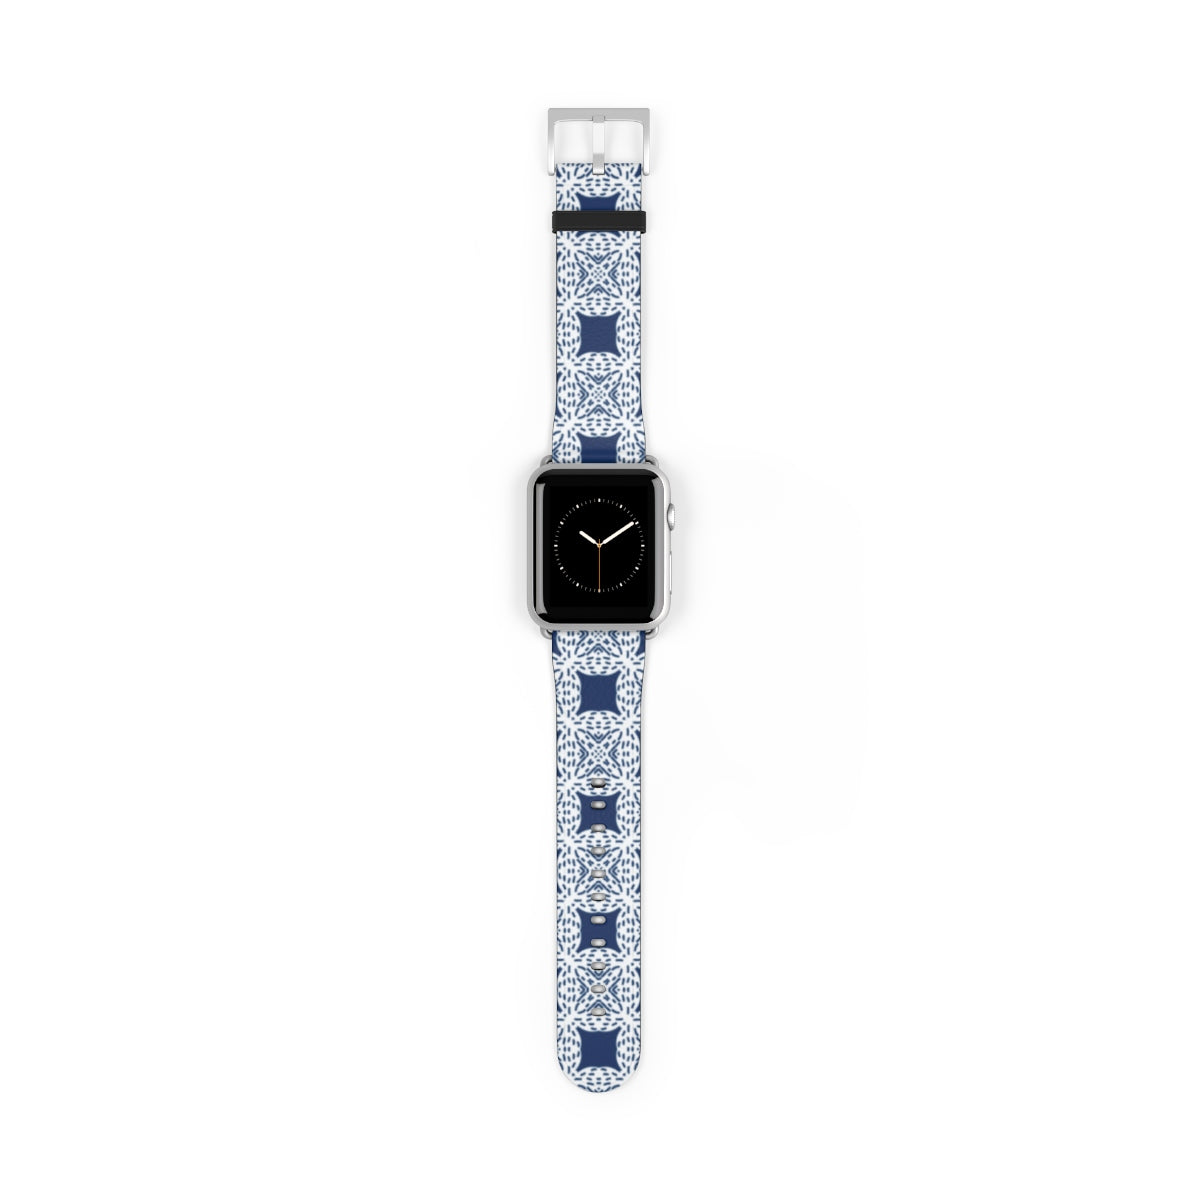 Camps Bay Watch Band